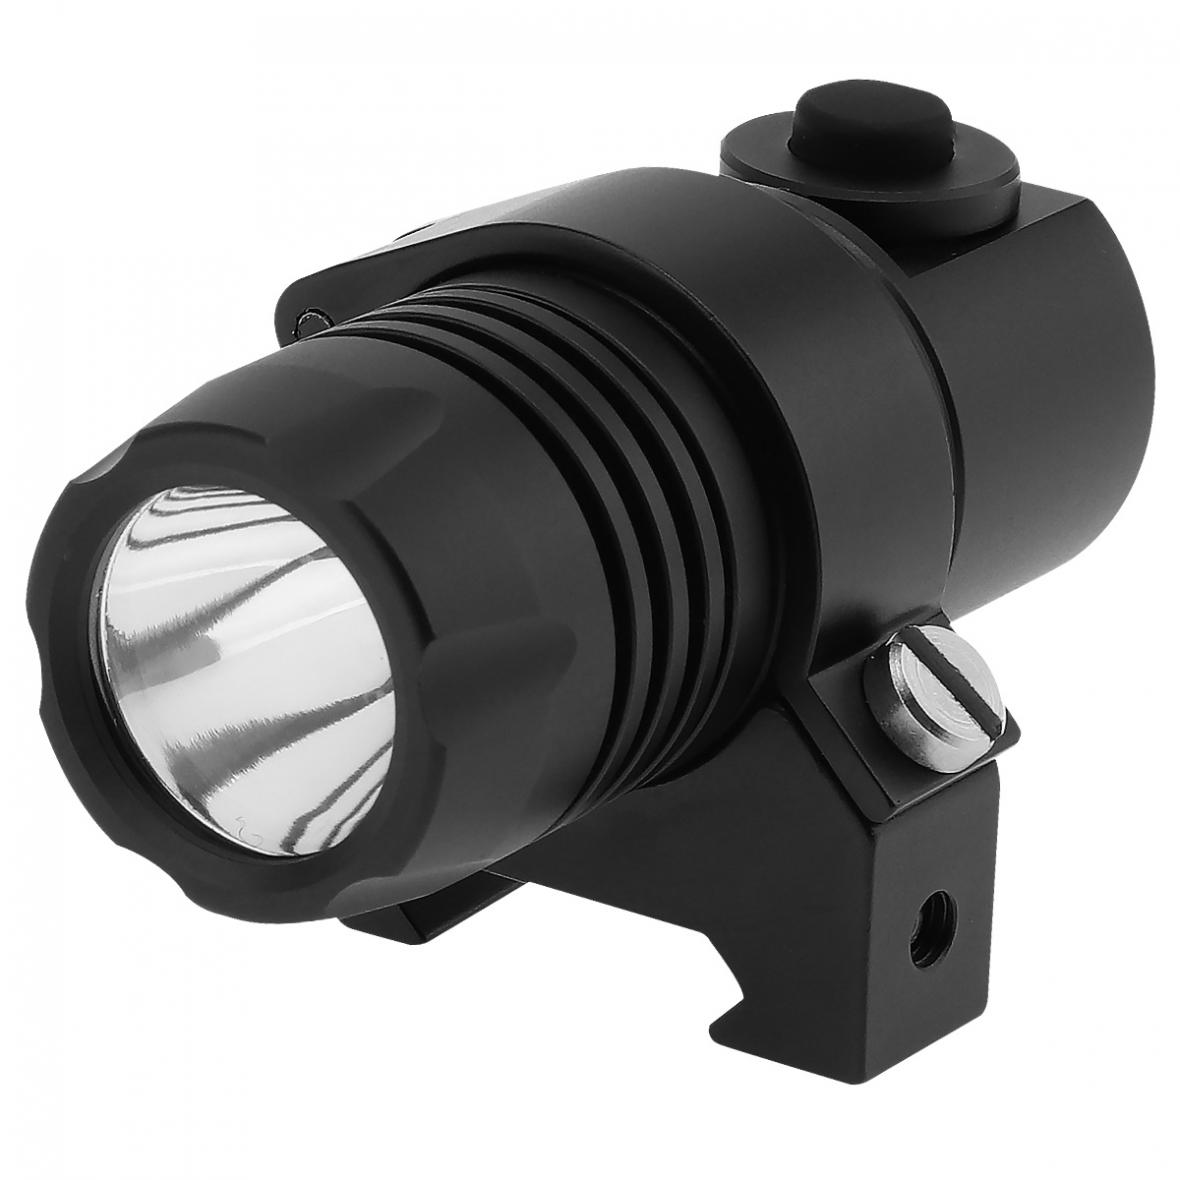 500LM Securitylng Waterproof 2 Modes G05 XP-G R5 LED Handheld Military Weapon Lights Pistol Torch Light Tactical Flashlight